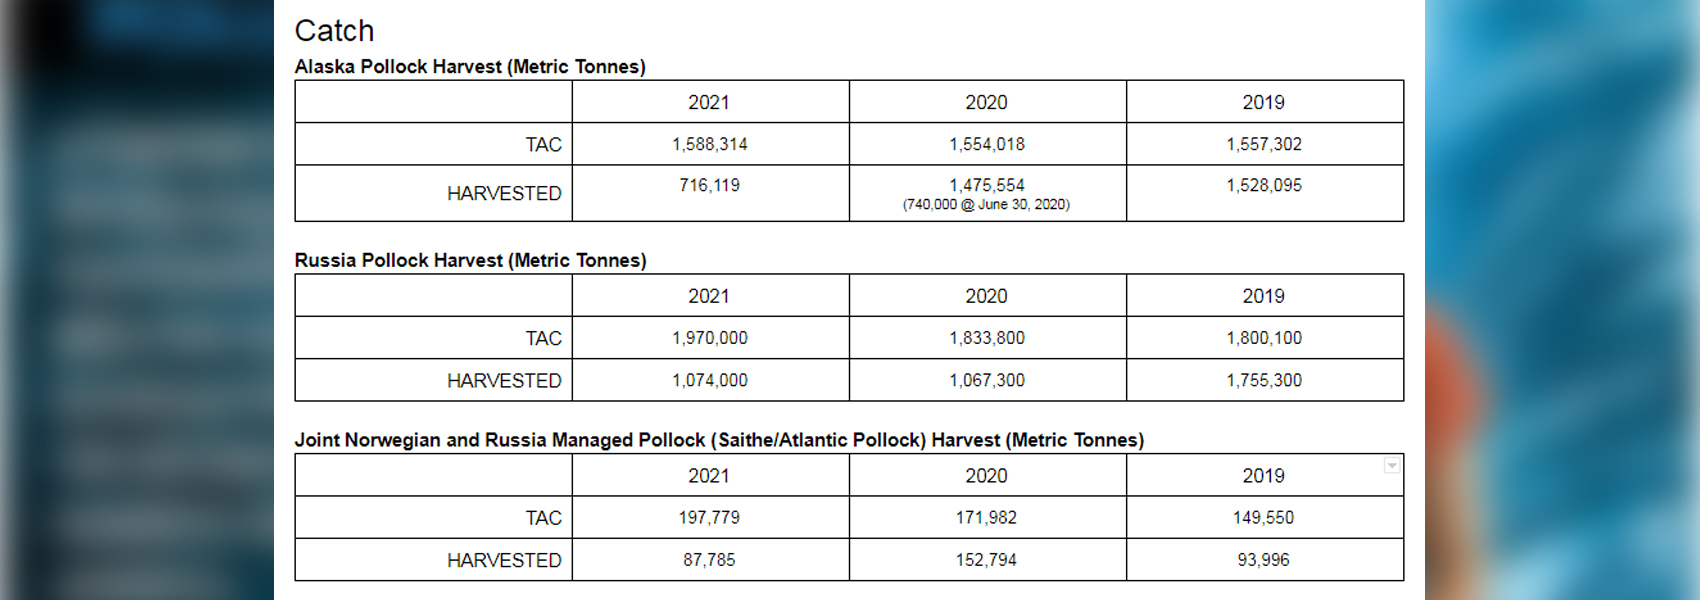 2021 Pollock Harvest Totals and TAC